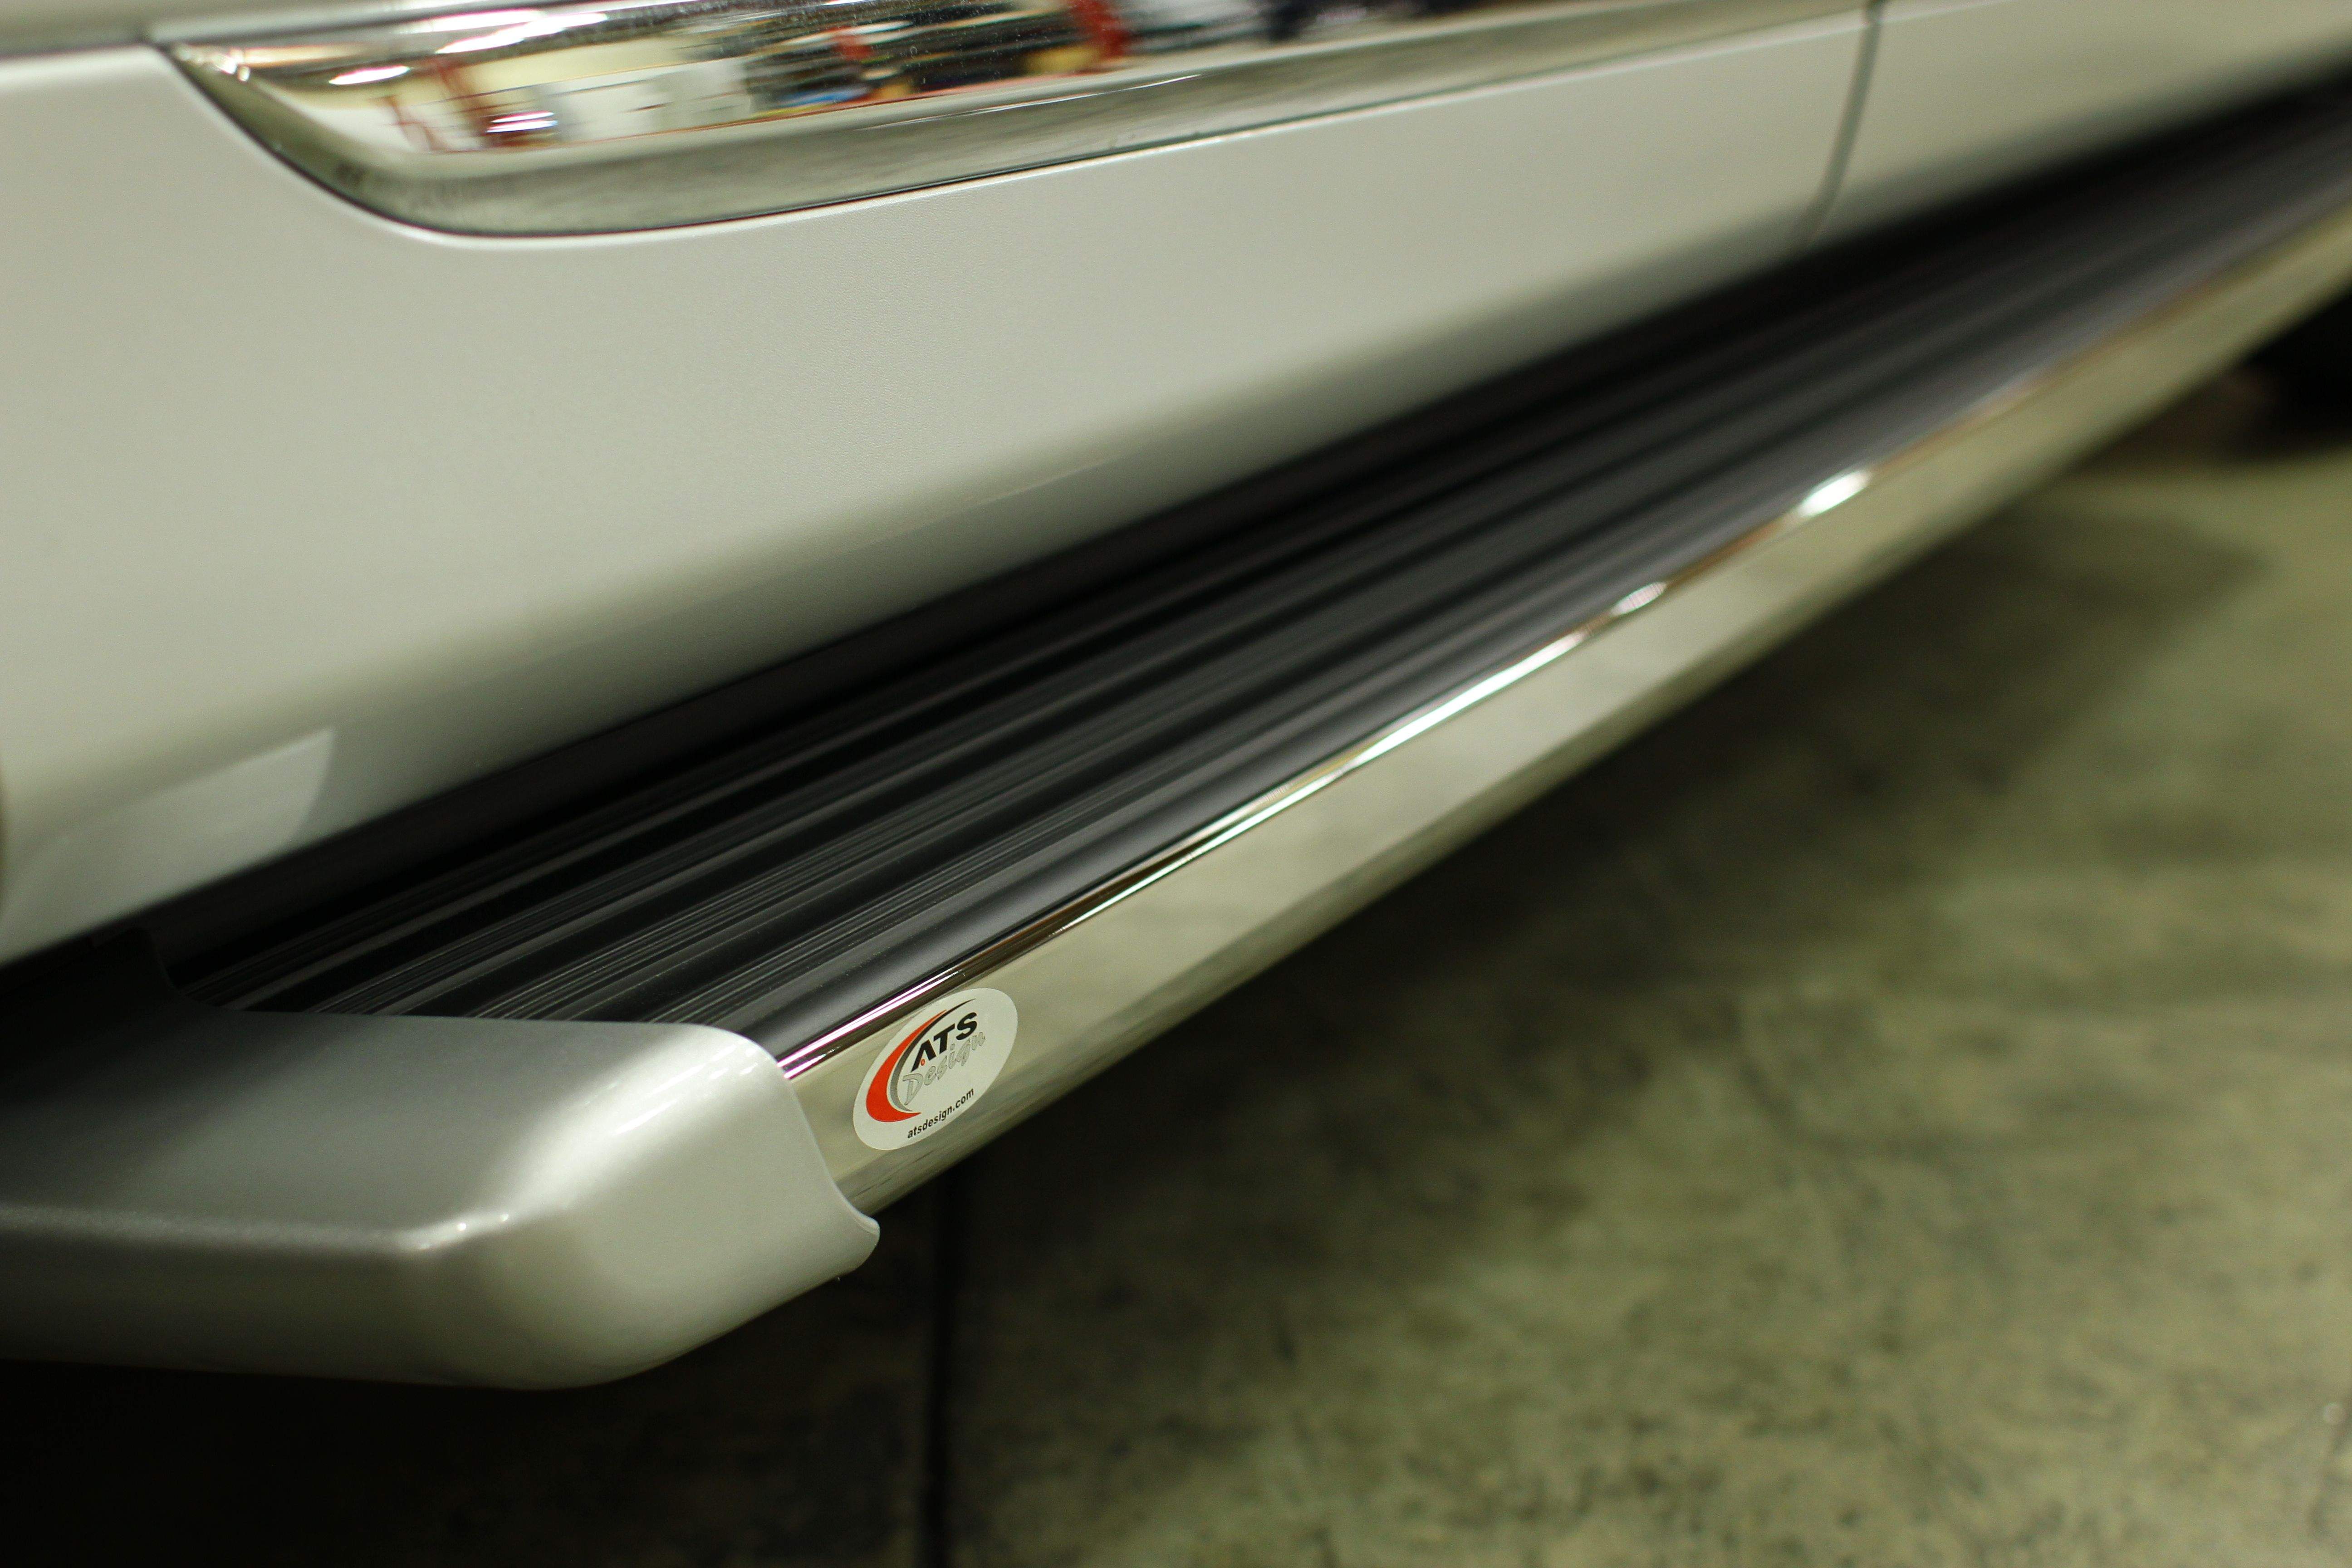 Painted To Match Matrix Series Running Boards By Ats Design View